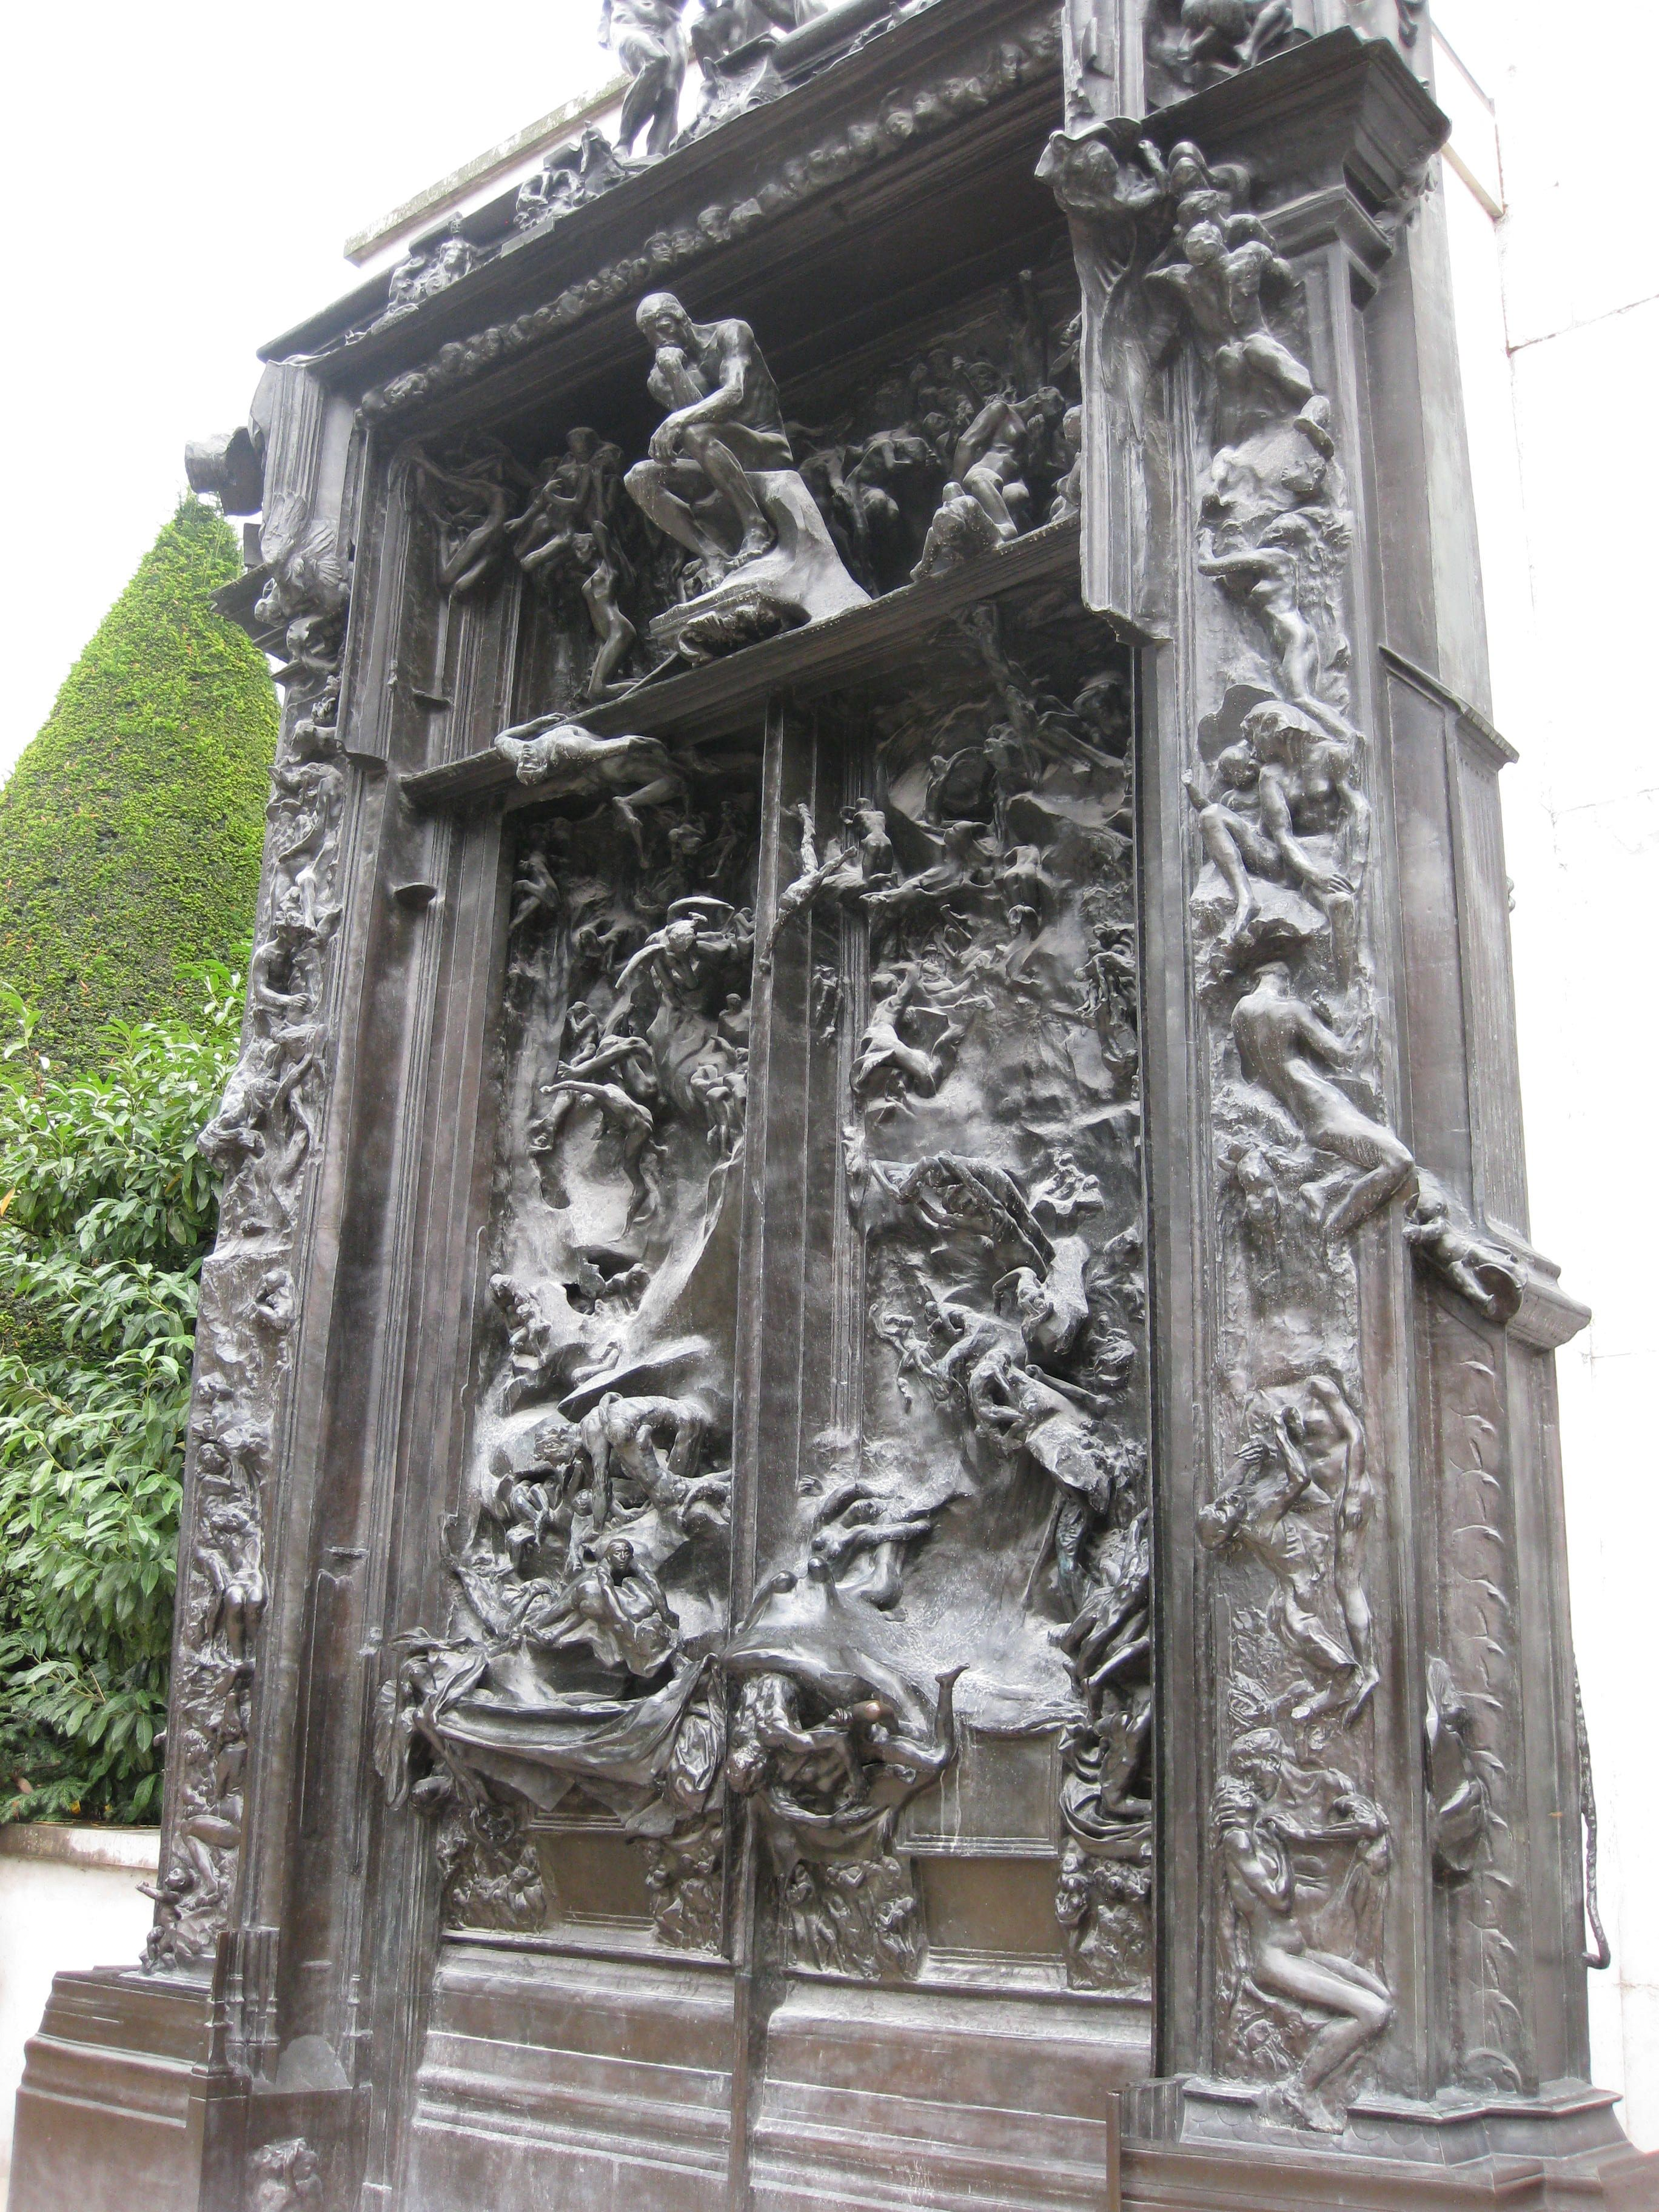 the gates of hell auguste rodin & the gates of hell auguste rodin | Art I like | Pinterest | Auguste ... pezcame.com